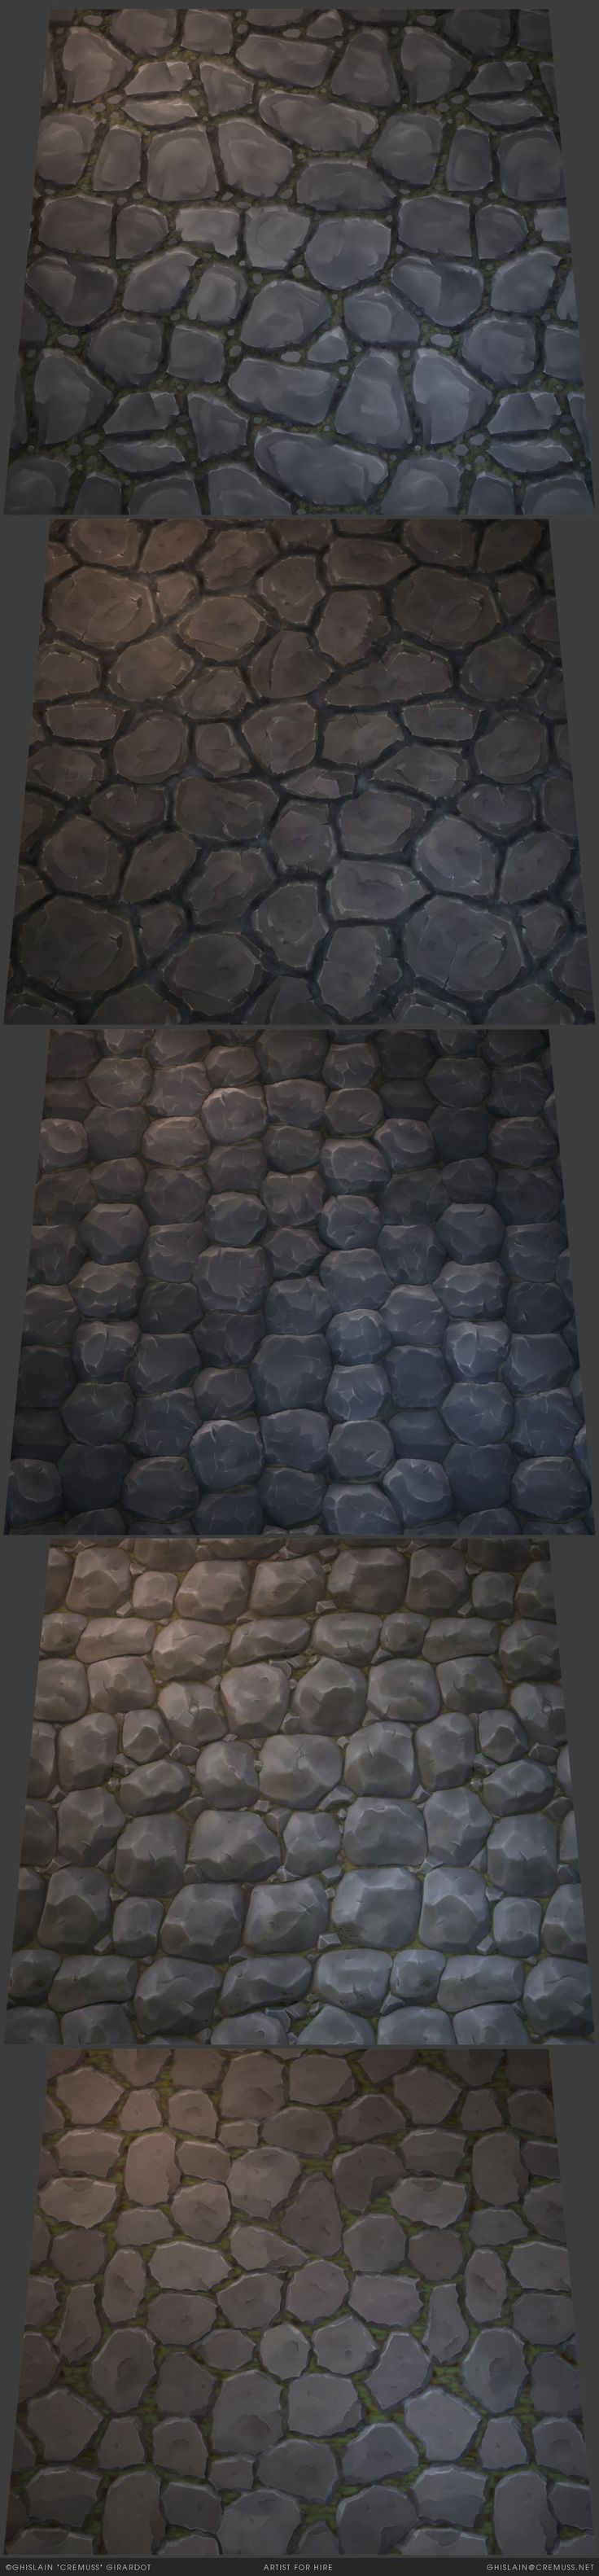 Handpainted stylized rocks textures. Available on sale on the Unity Asset Store